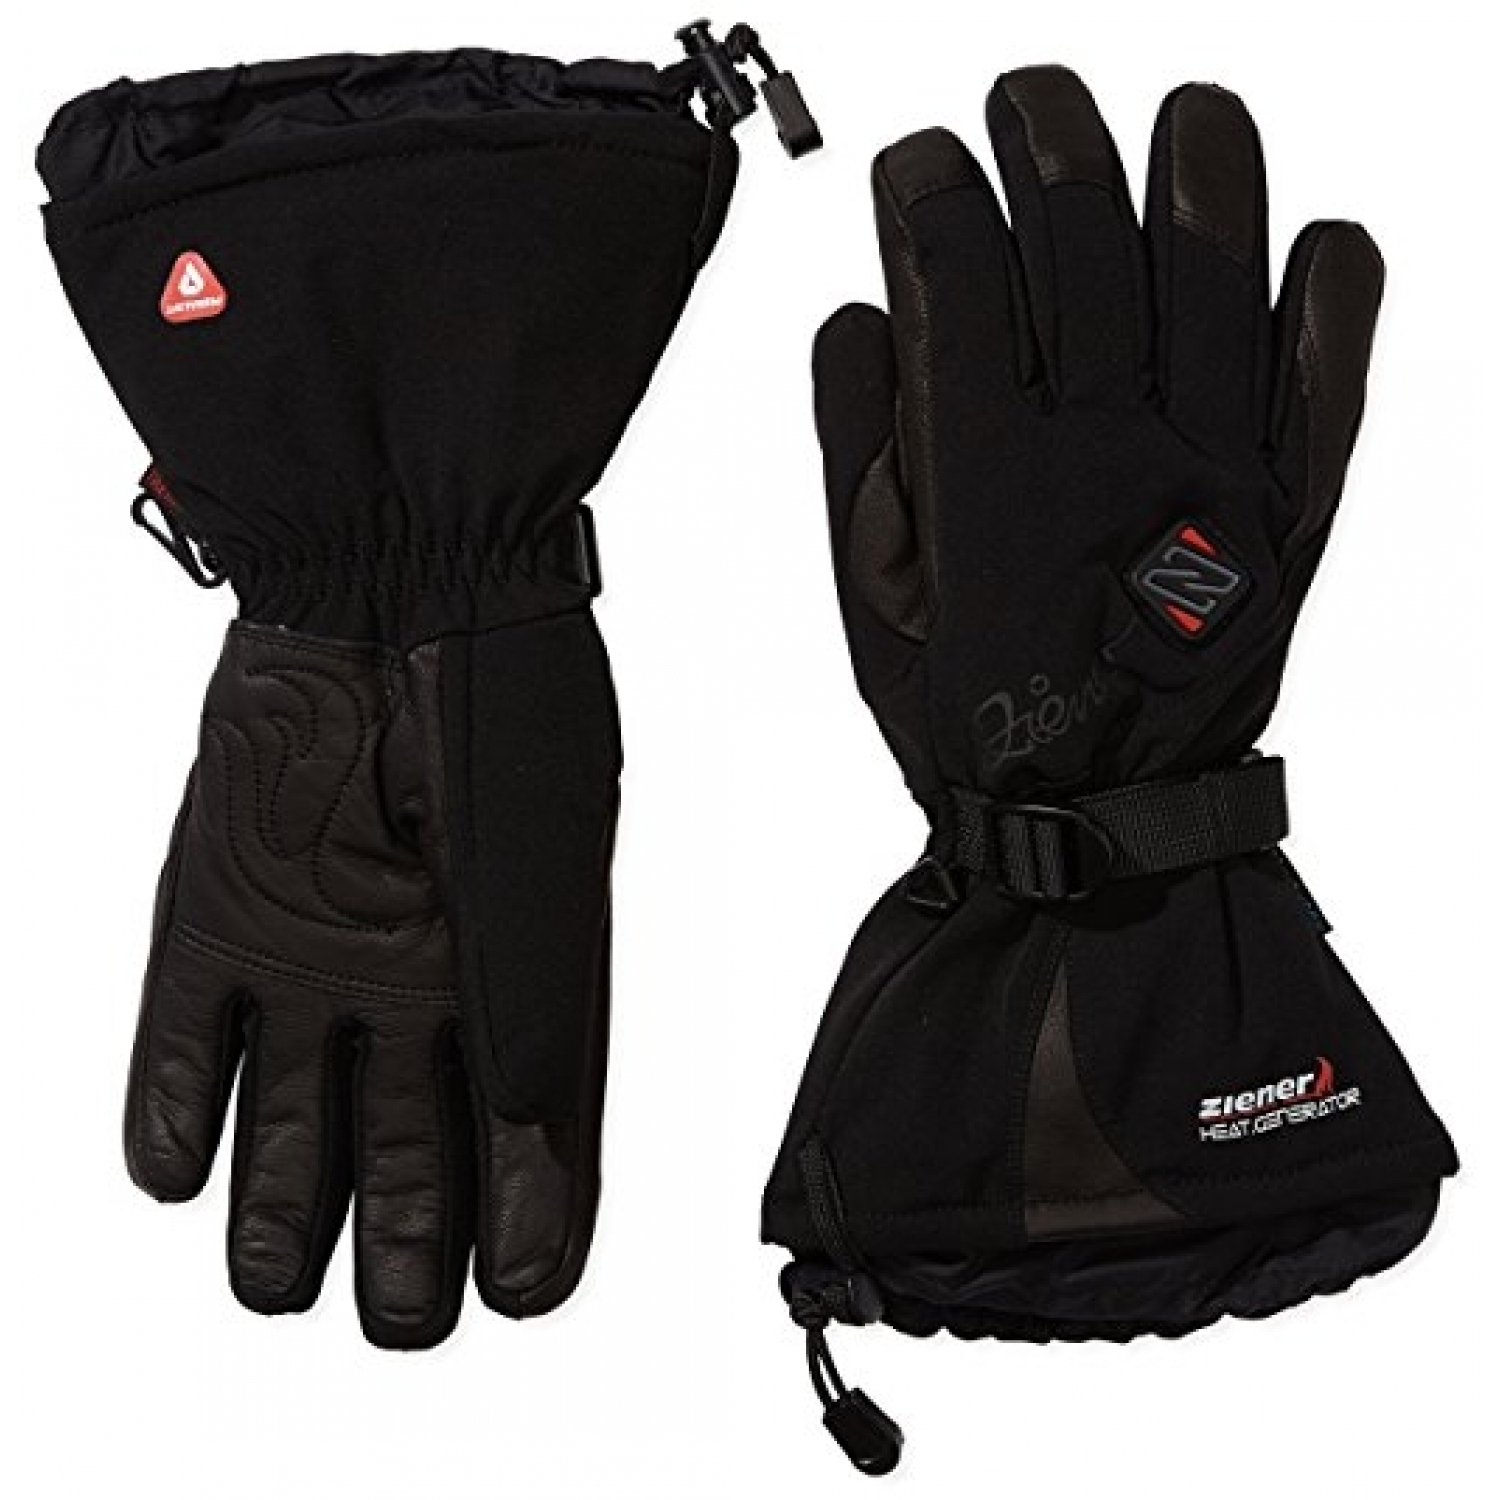 Ziener Kanani AS (R) PR Hot Glove Lady Handschuhe Gr. 6,5